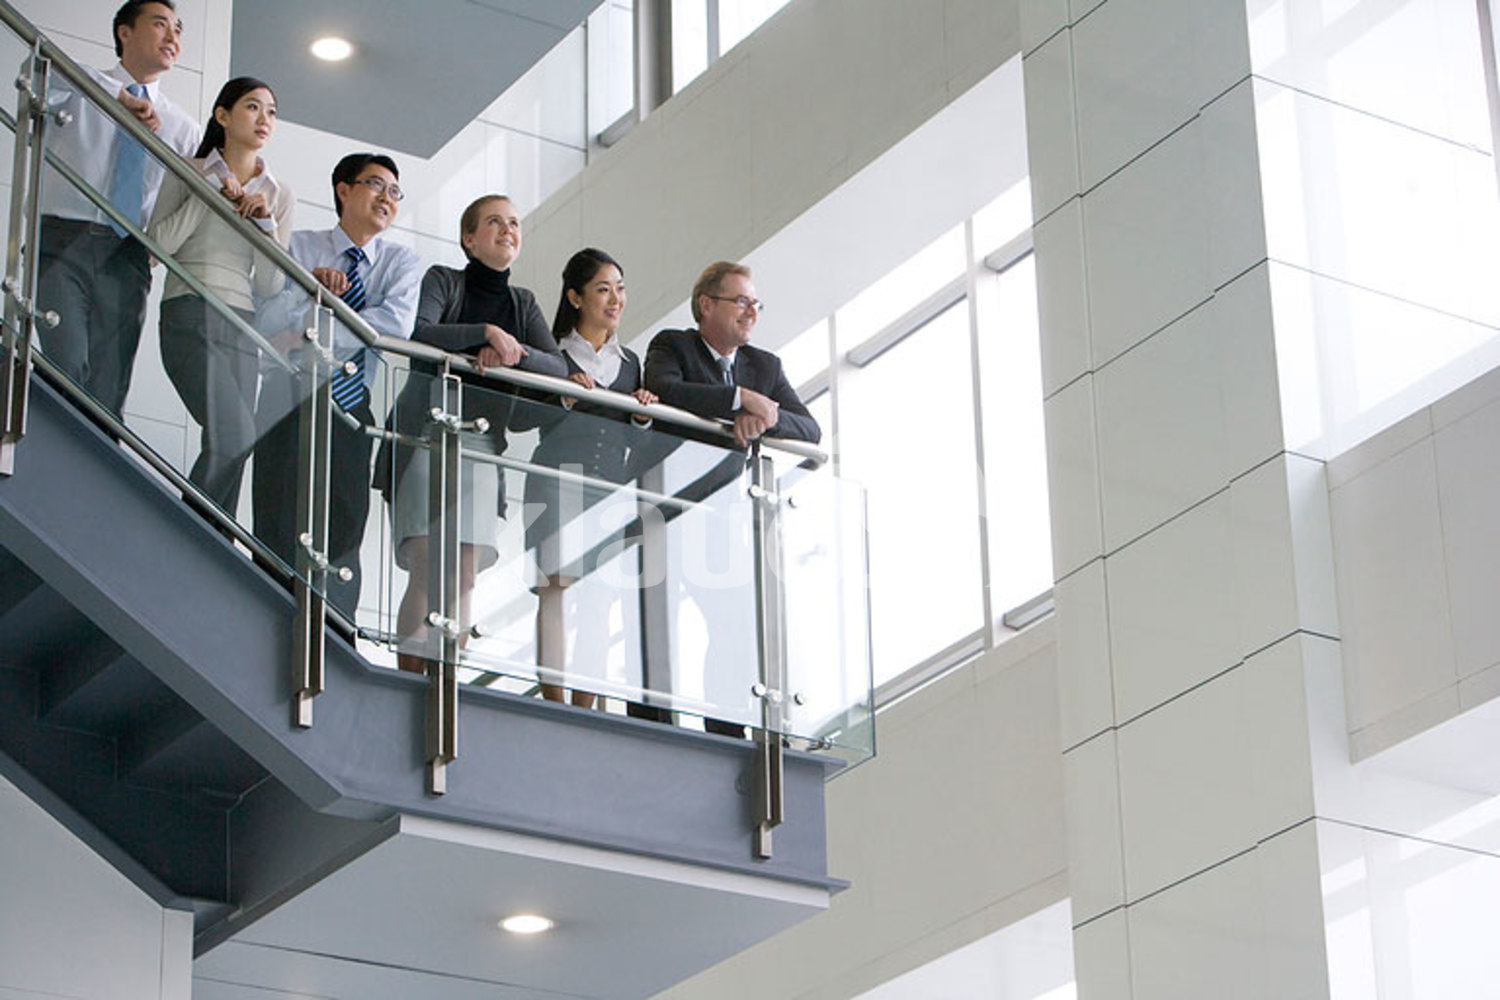 Officemates on the stairs